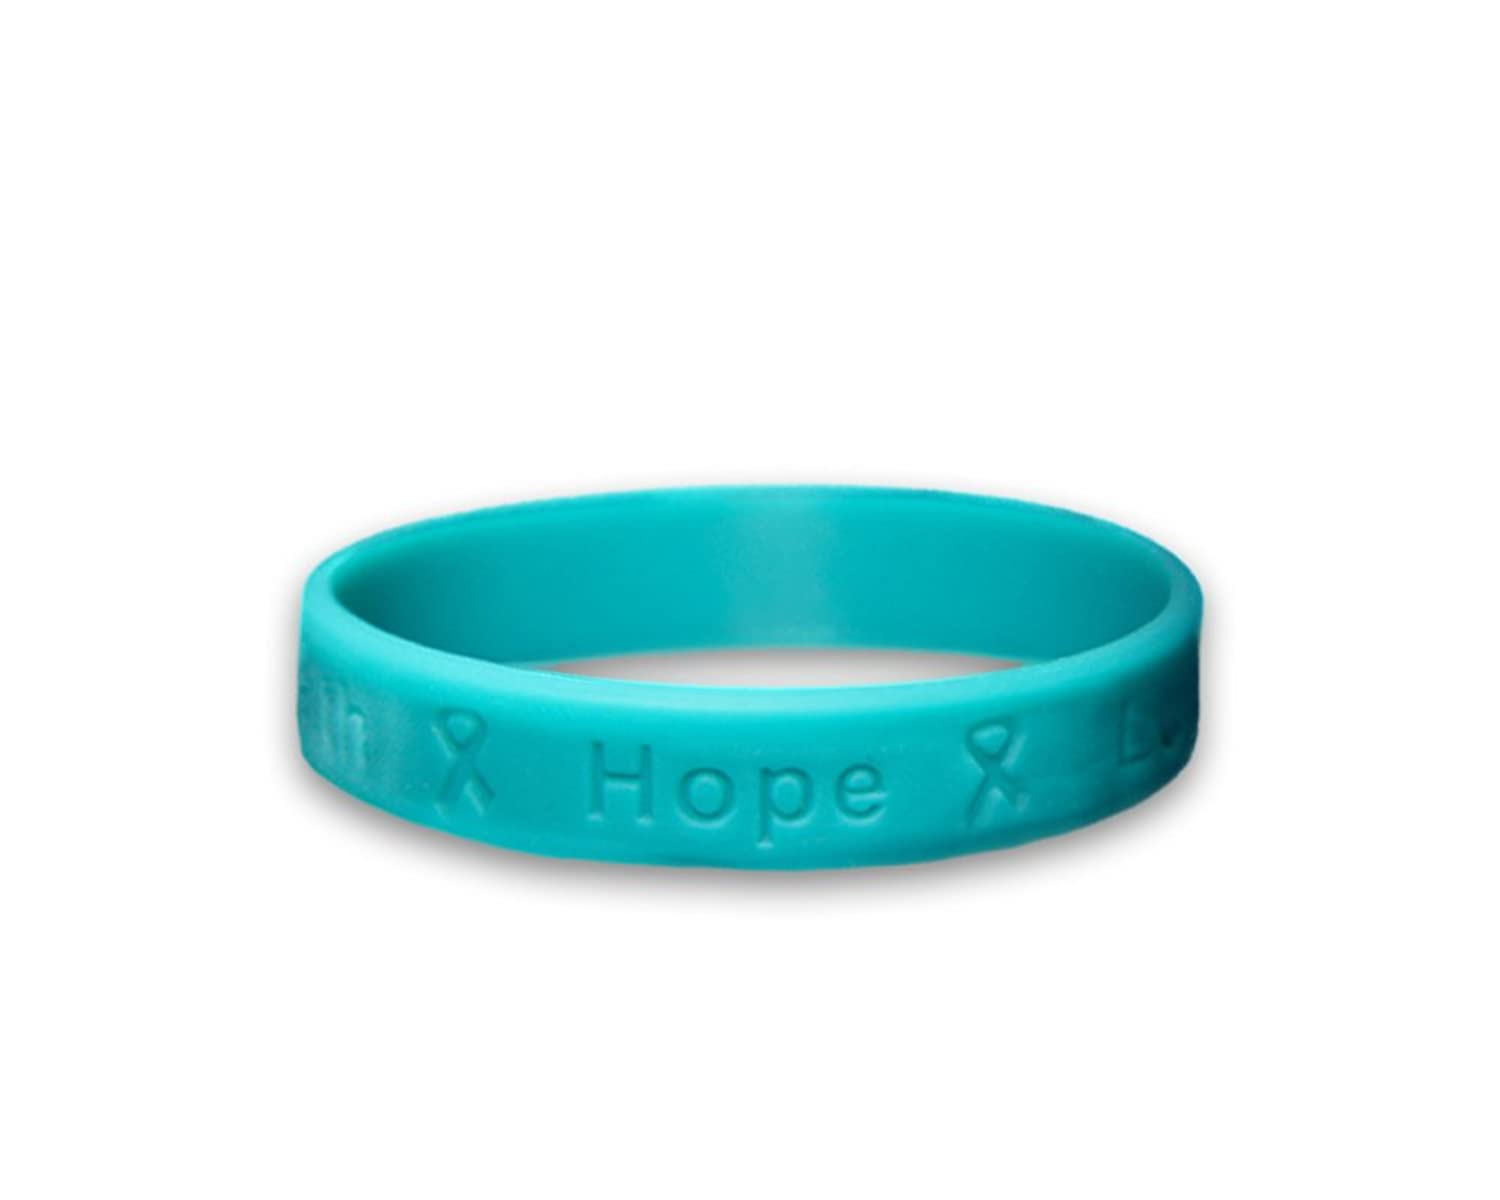 bumper the light find pin lapel blue ocd ribbon bracelet awareness cure sticker magnet scleroderma